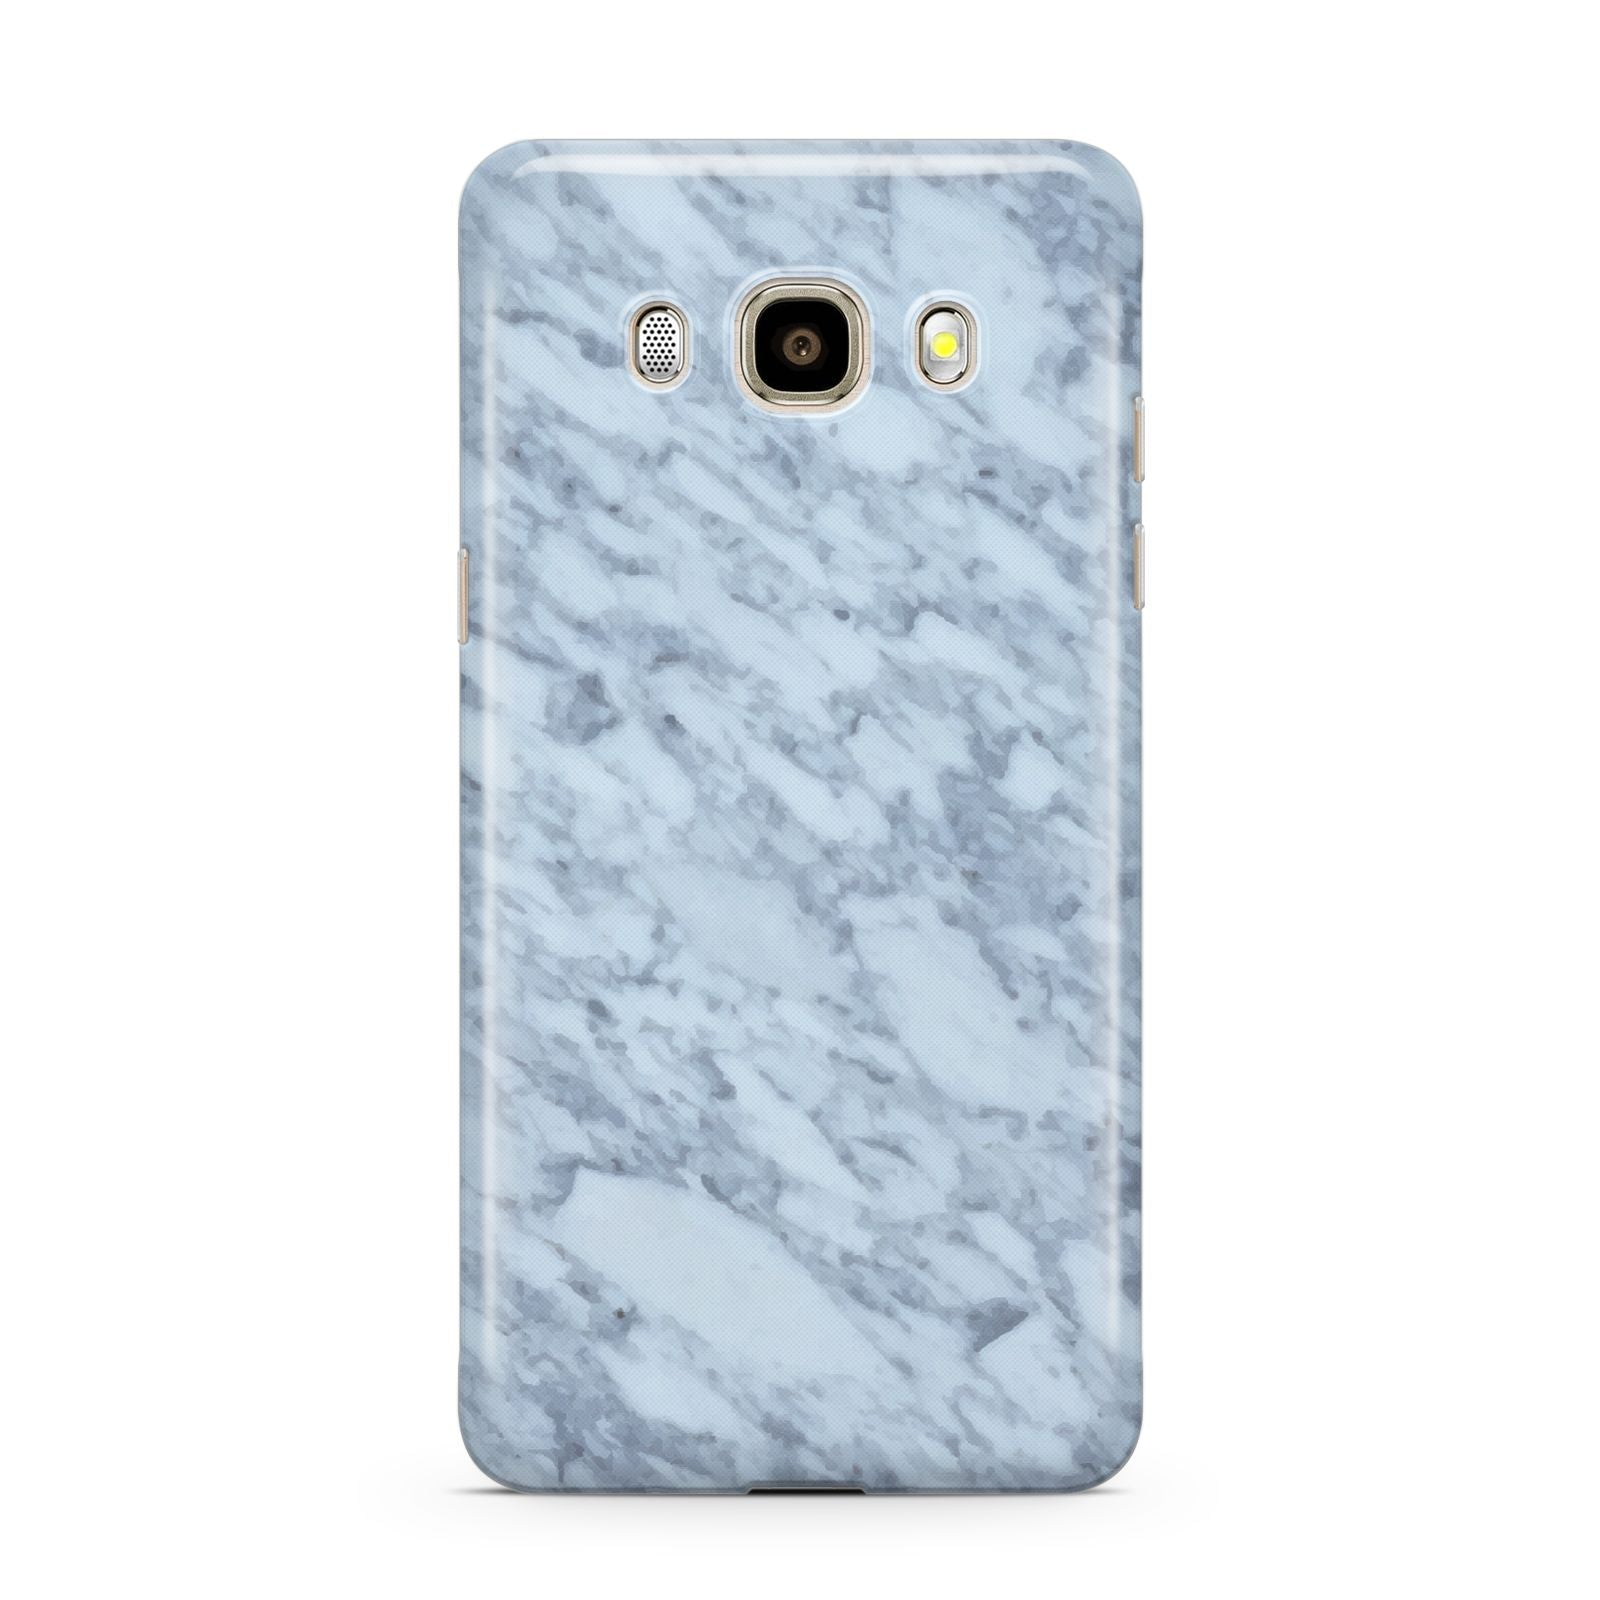 Faux Marble Grey 2 Samsung Galaxy J7 2016 Case on gold phone